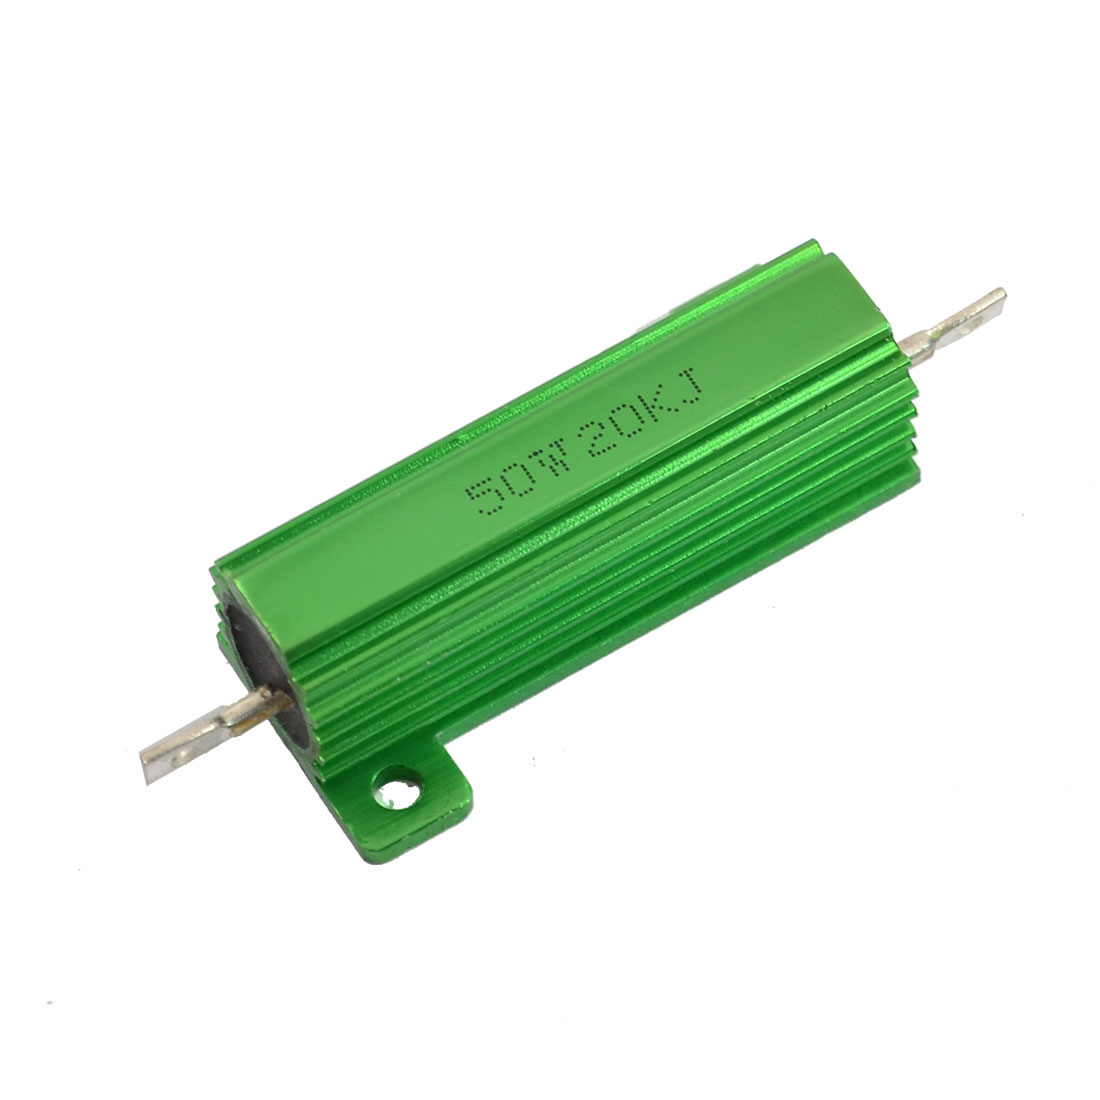 Aluminum Case 50W 20K Ohm 5% Chassis Mounted Wirewound Resistor